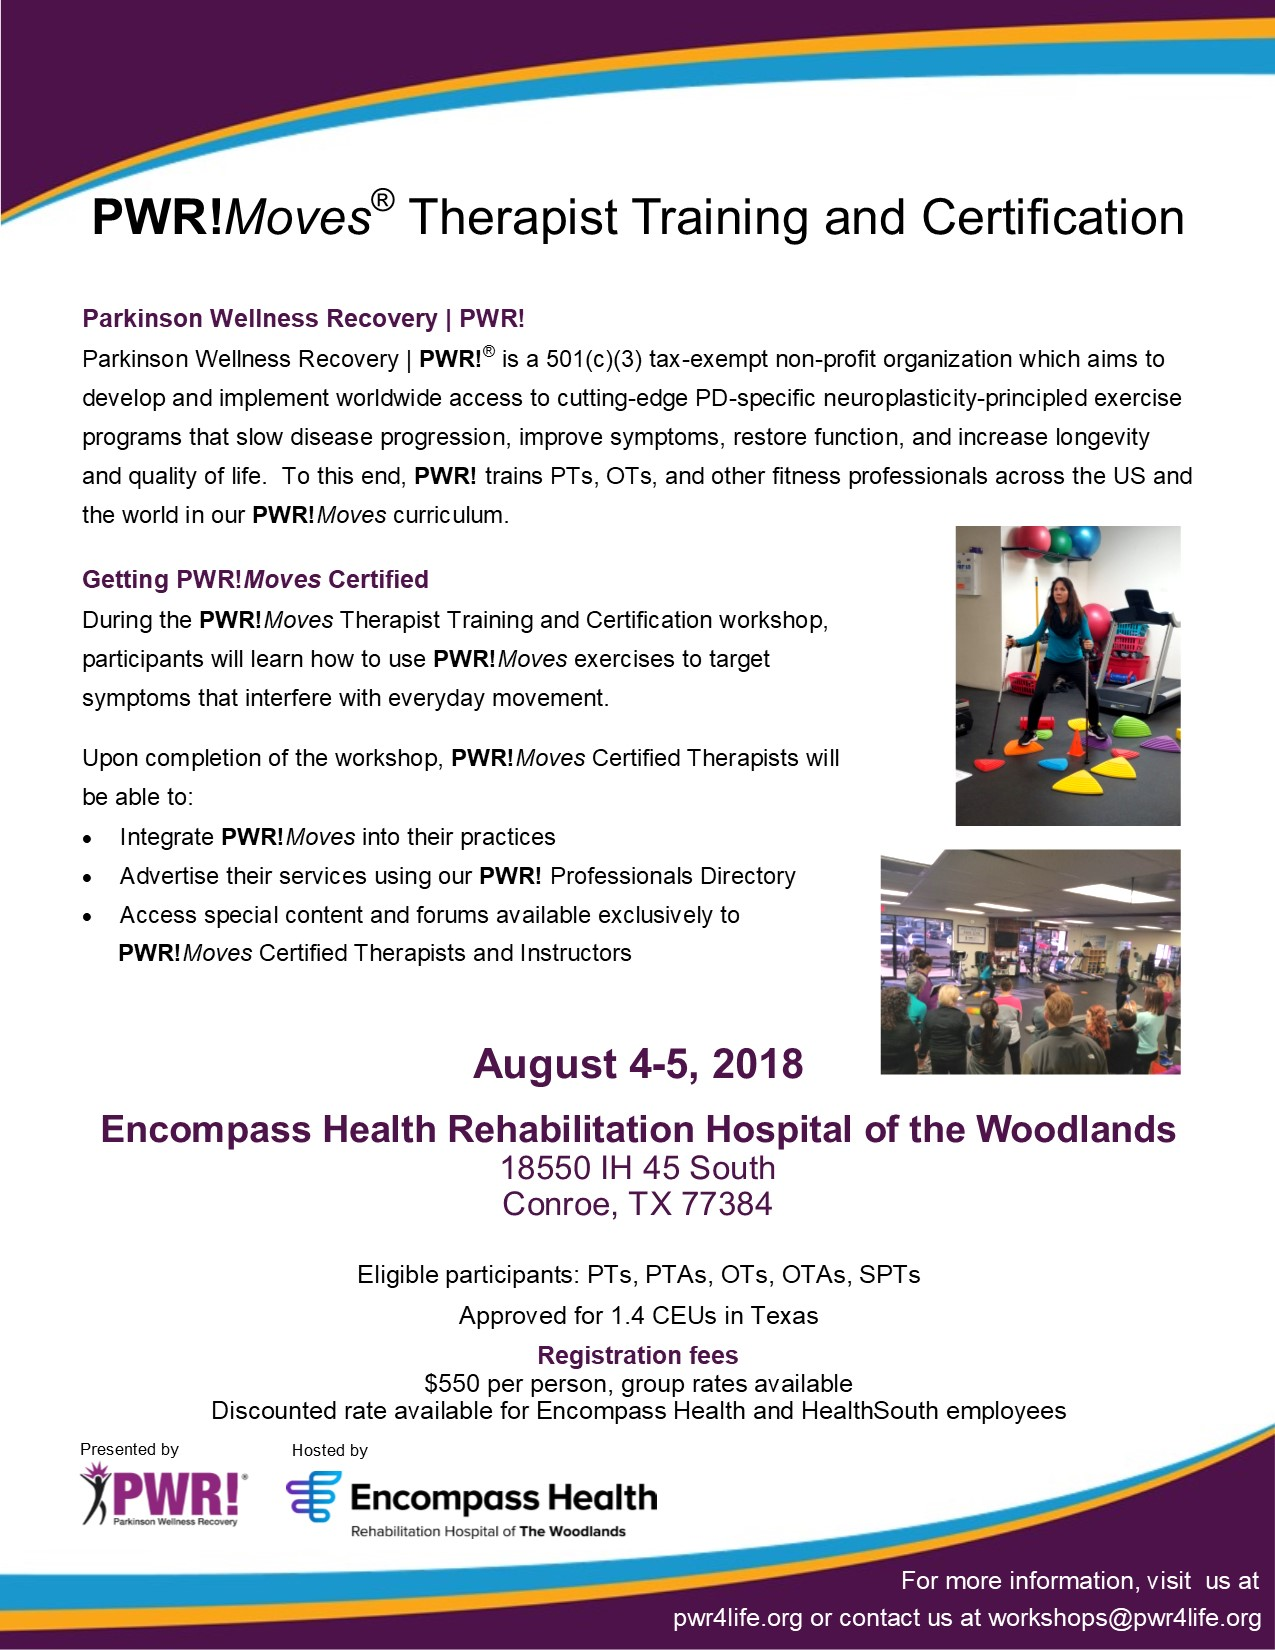 Workshop 95 Addressing Students >> Upcoming Pwr Therapist Workshops Parkinson Wellness Recovery Pwr